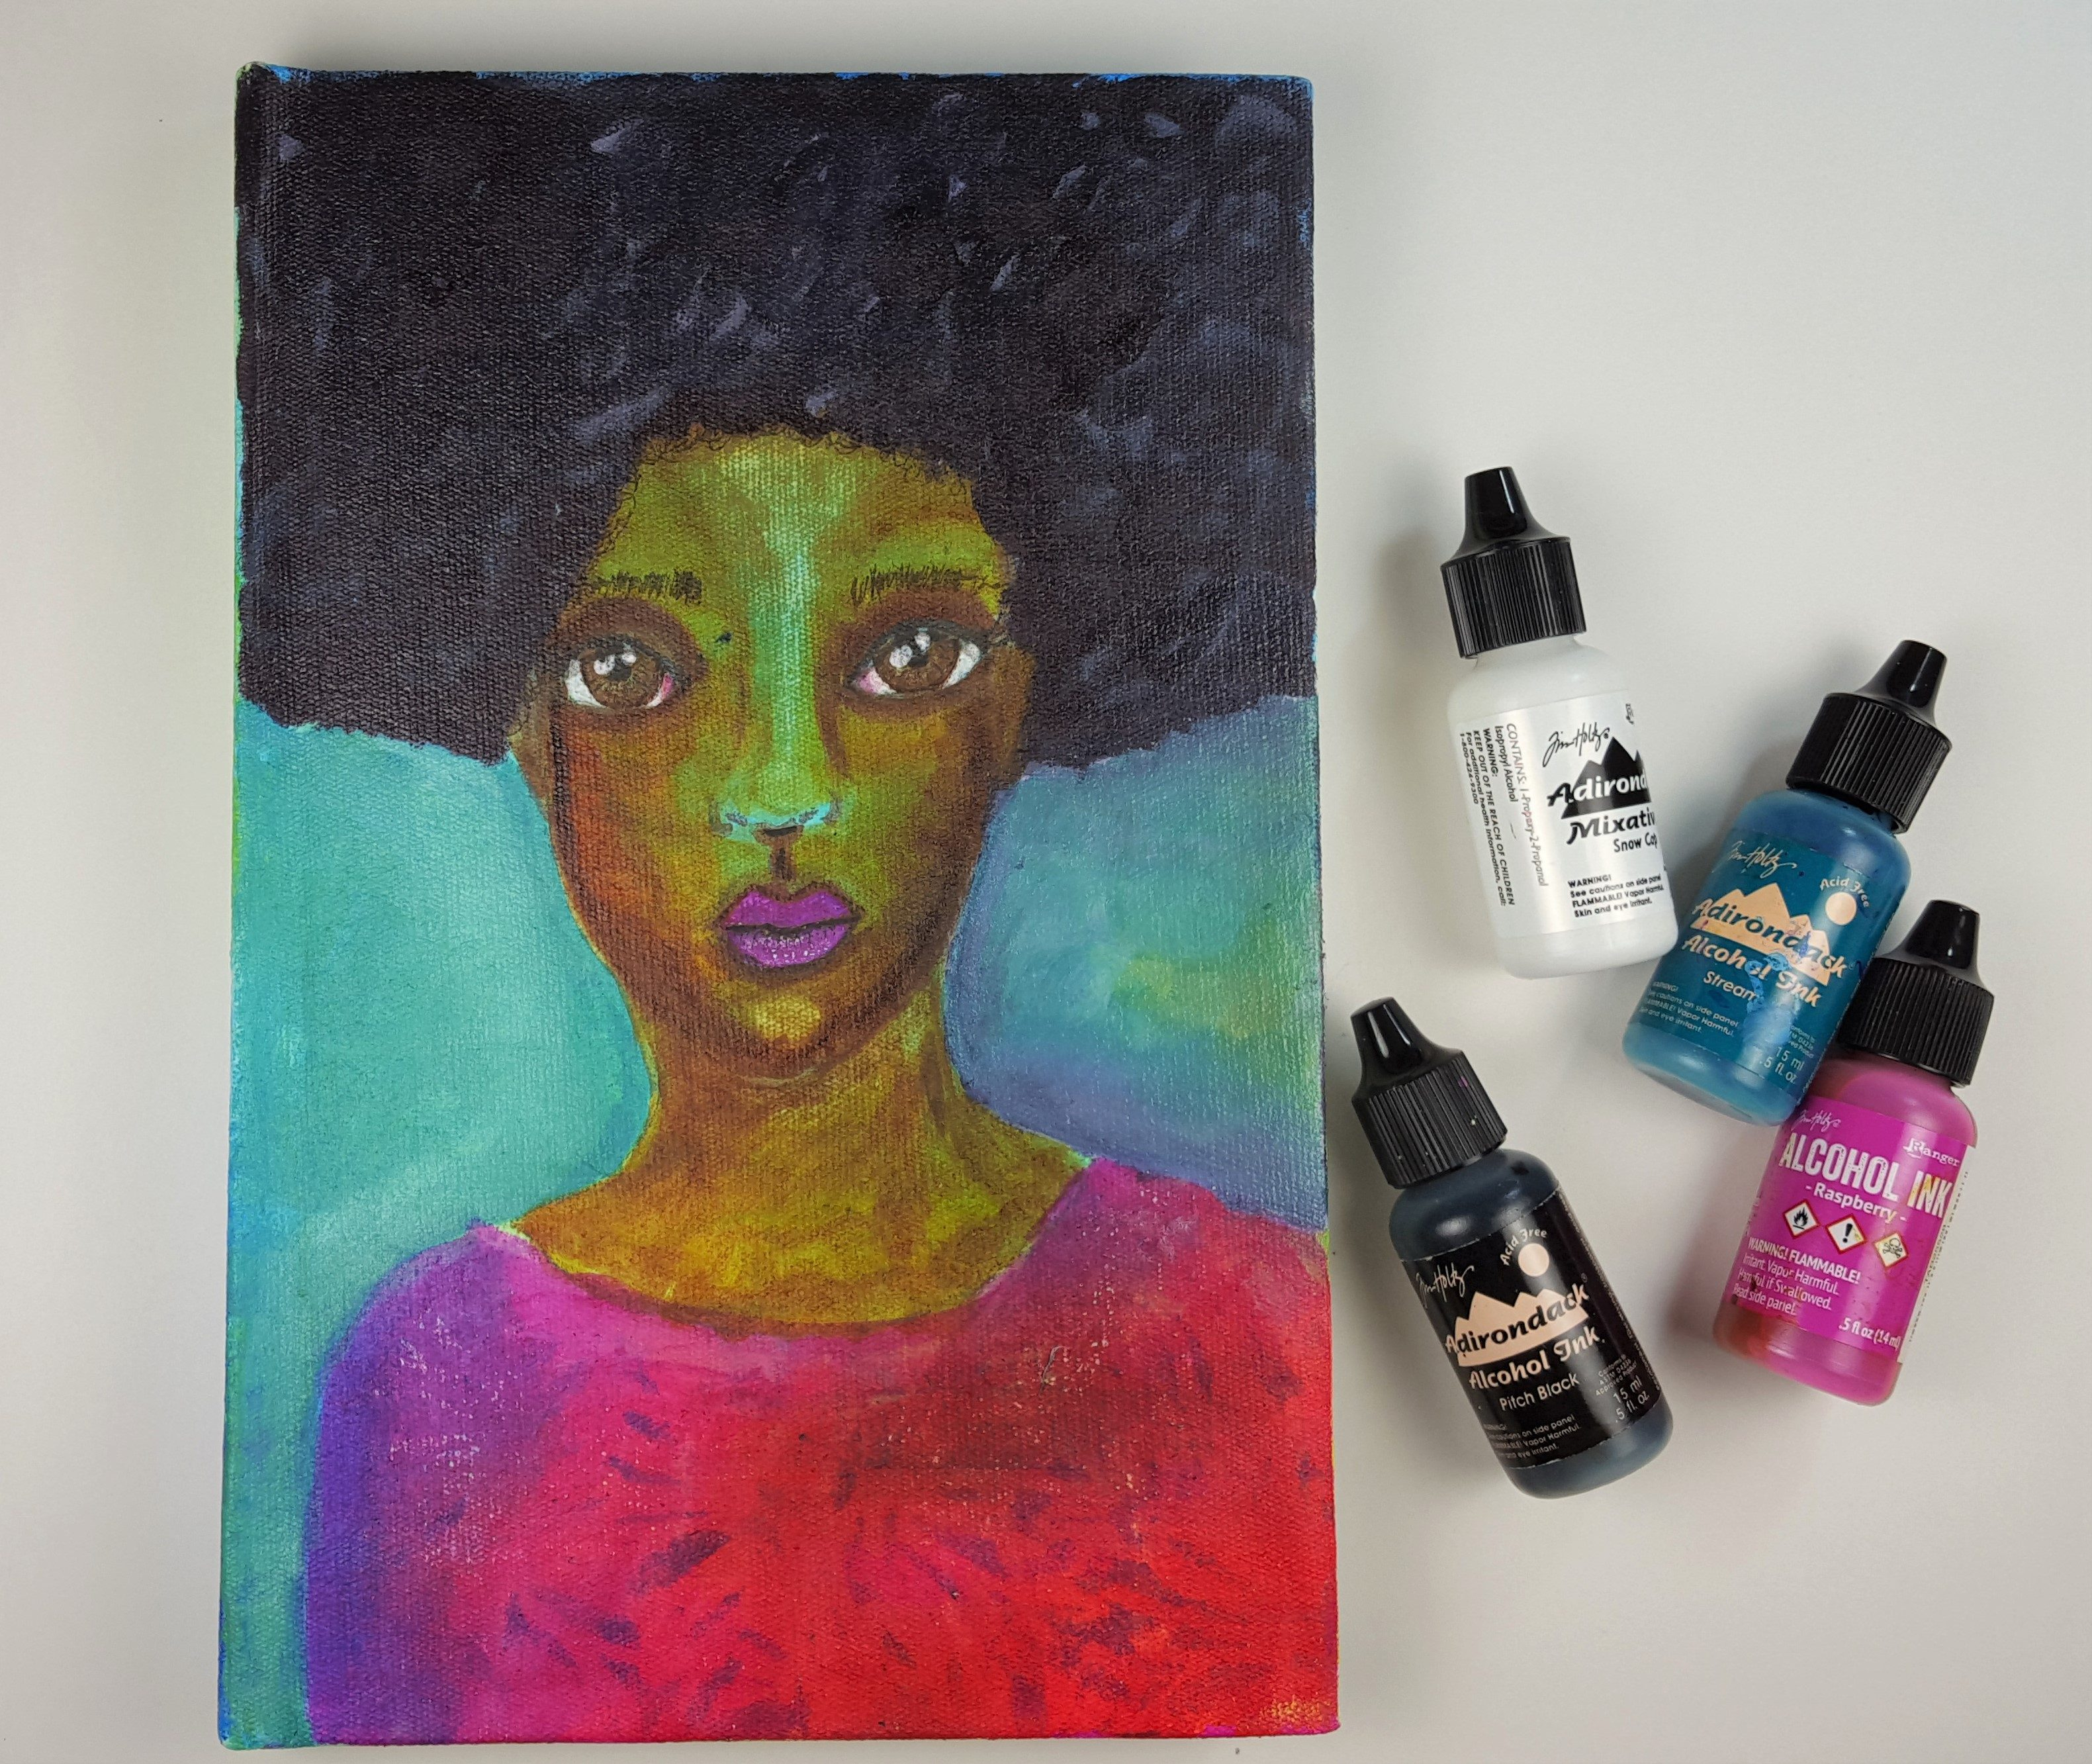 Painting a Face with Alcohol Inks